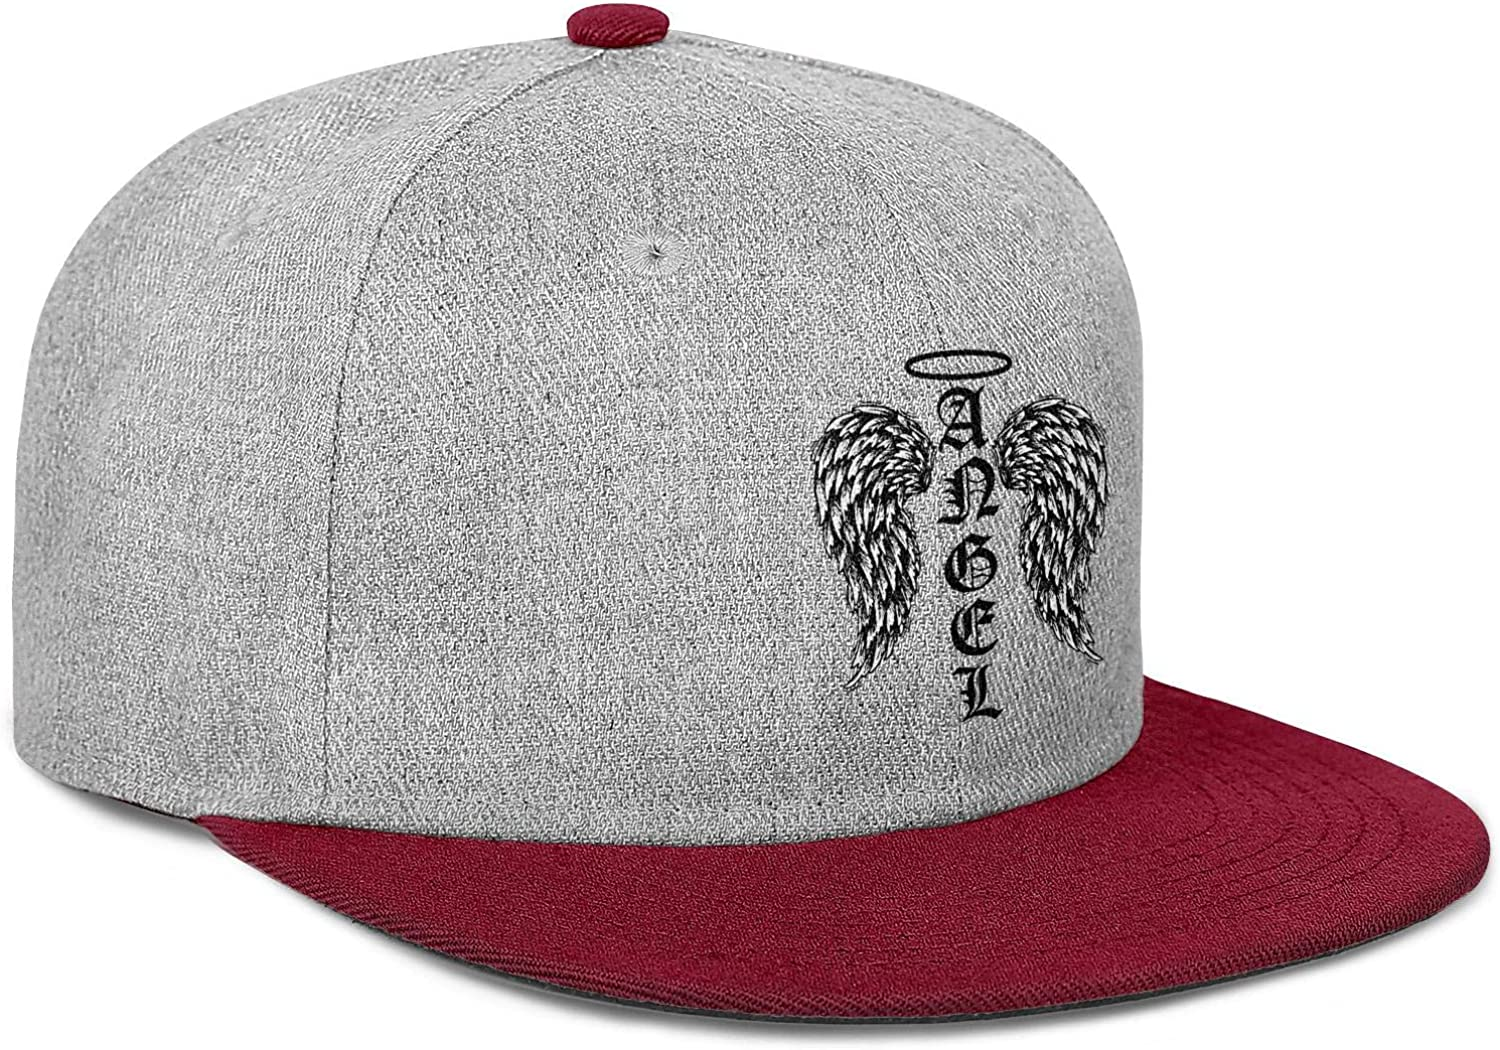 Angel Wings Halo Feathers God Awesome Funny Men Women Wool Cool Cap Adjustable Snapback Beach Hat